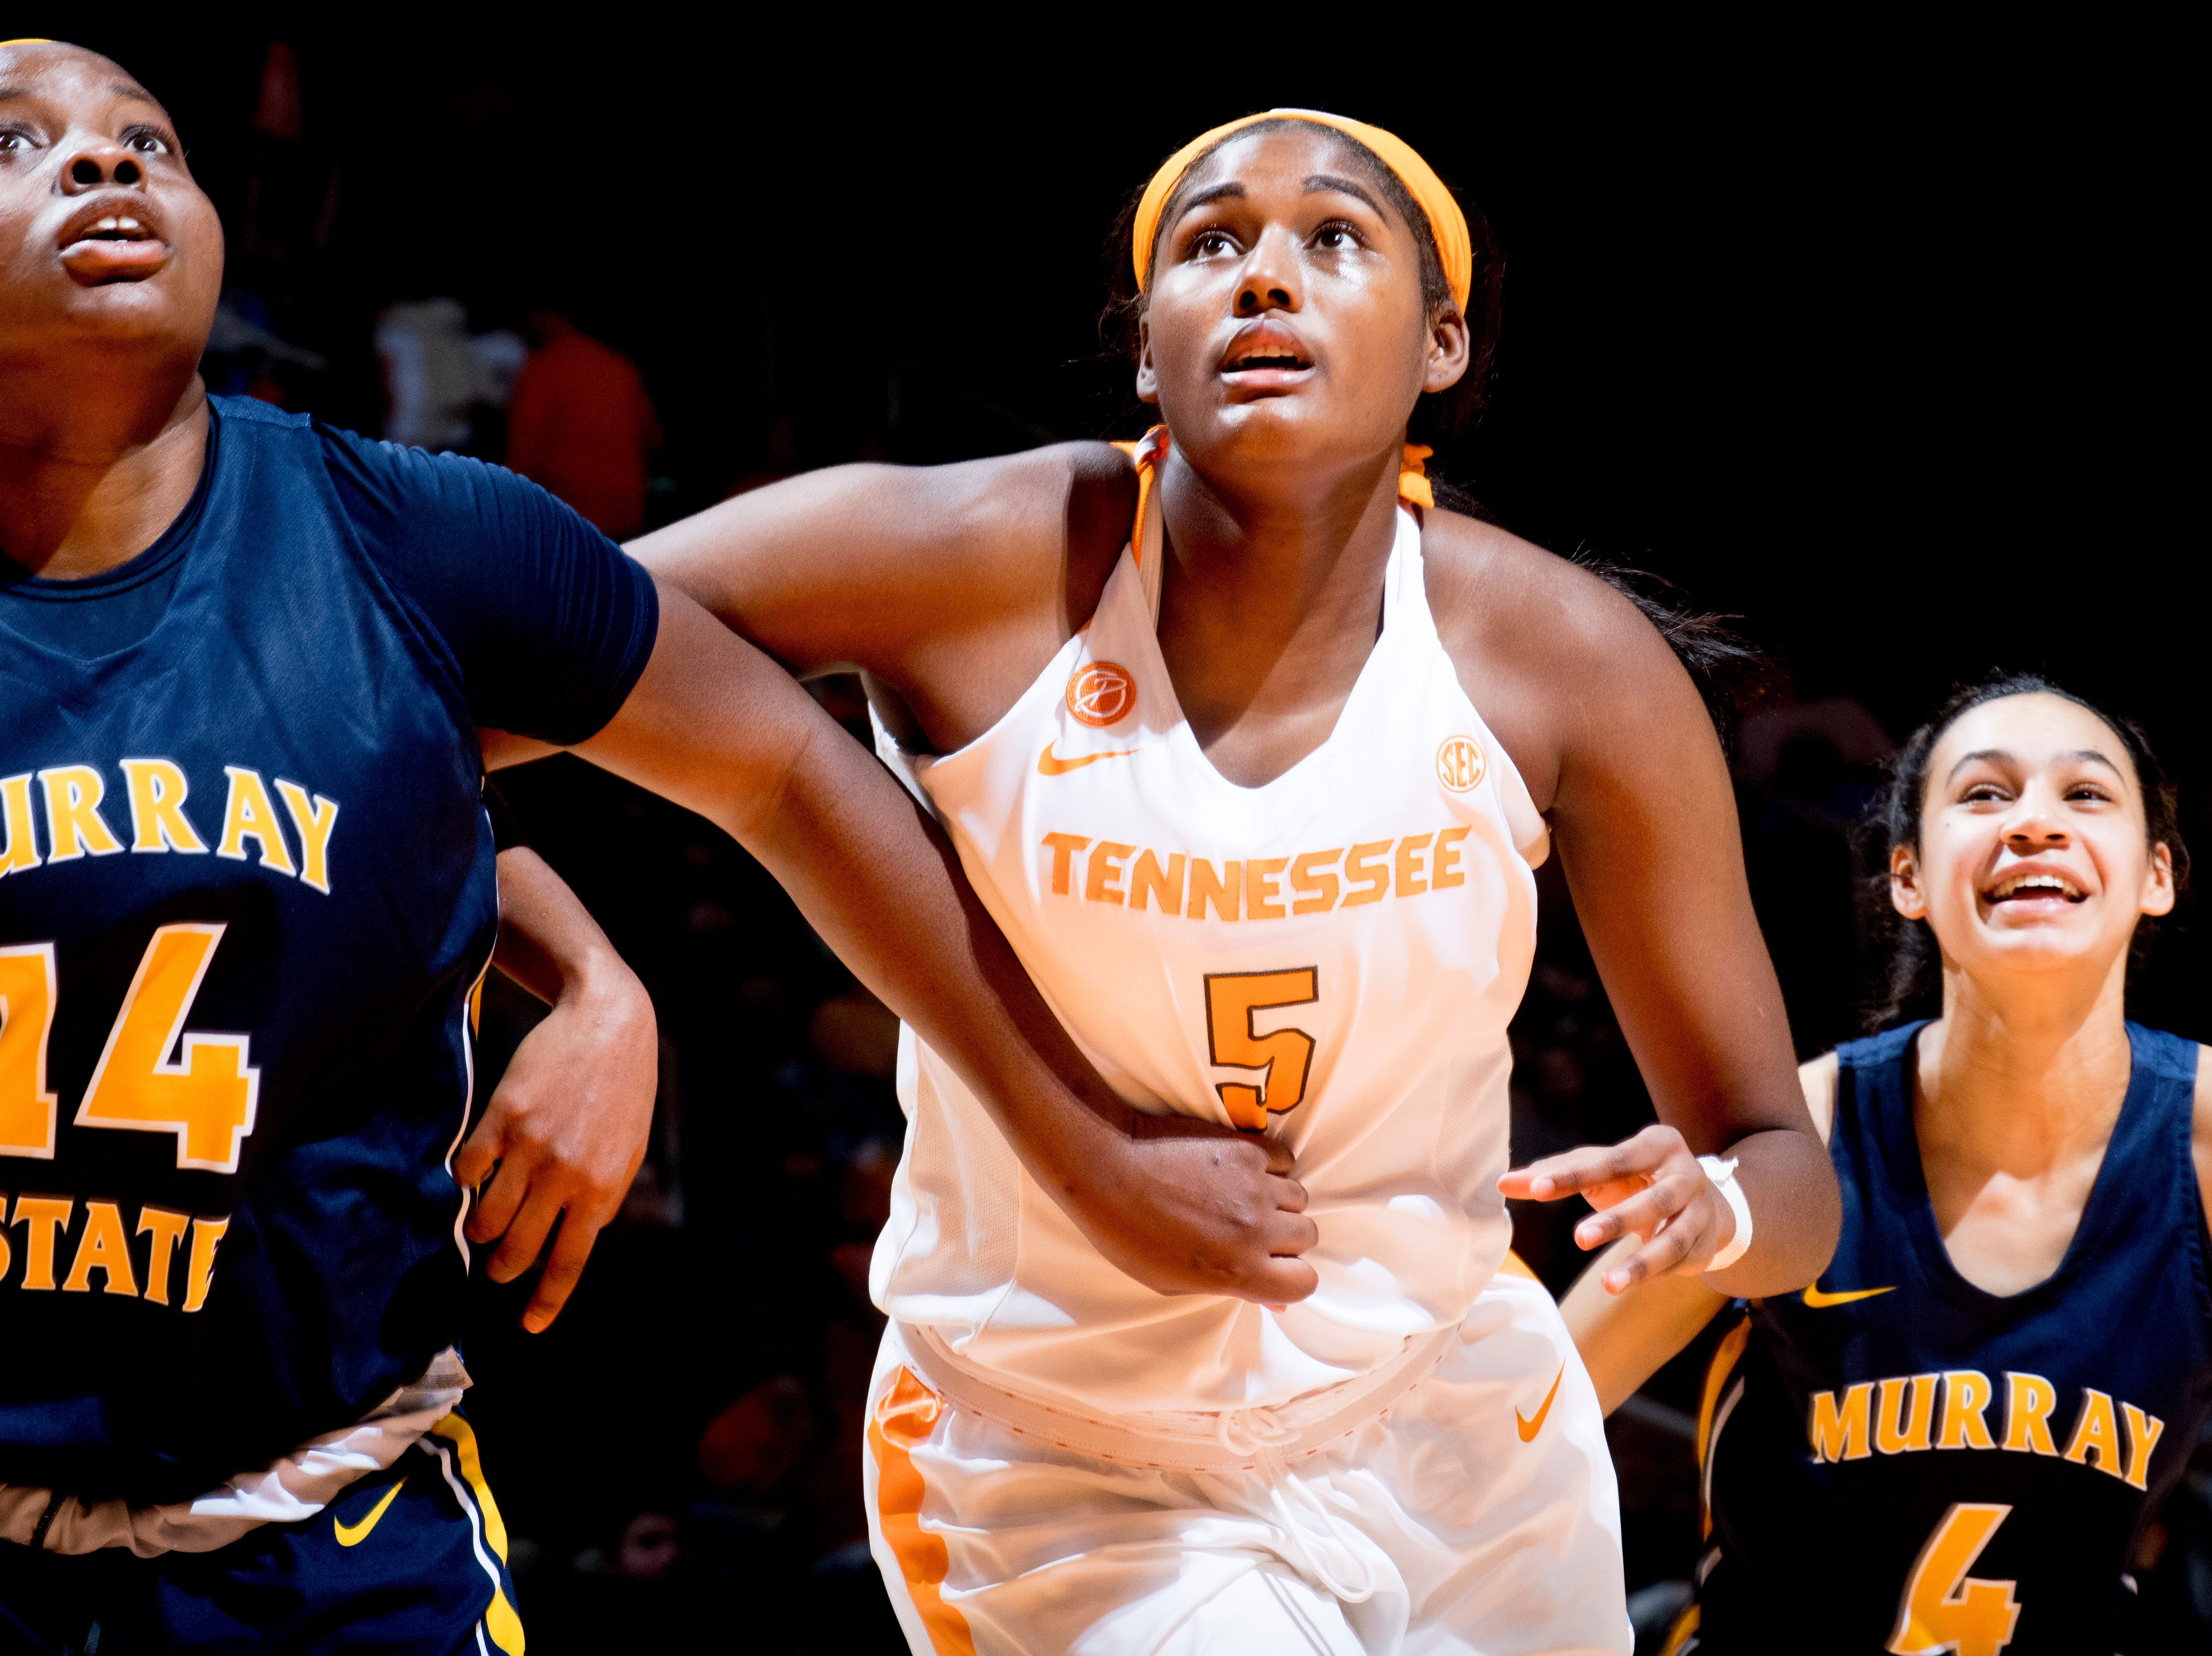 Tennessee center Kamera Harris (5), Murray State forward Evelyn Adebayo (14) and Murray State guard Lex Mayes (4) eye the rebound ball during a game between the Tennessee Lady Vols and Murray State at Thompson-Boling Arena in Knoxville, Tennessee on Friday, December 28, 2018.